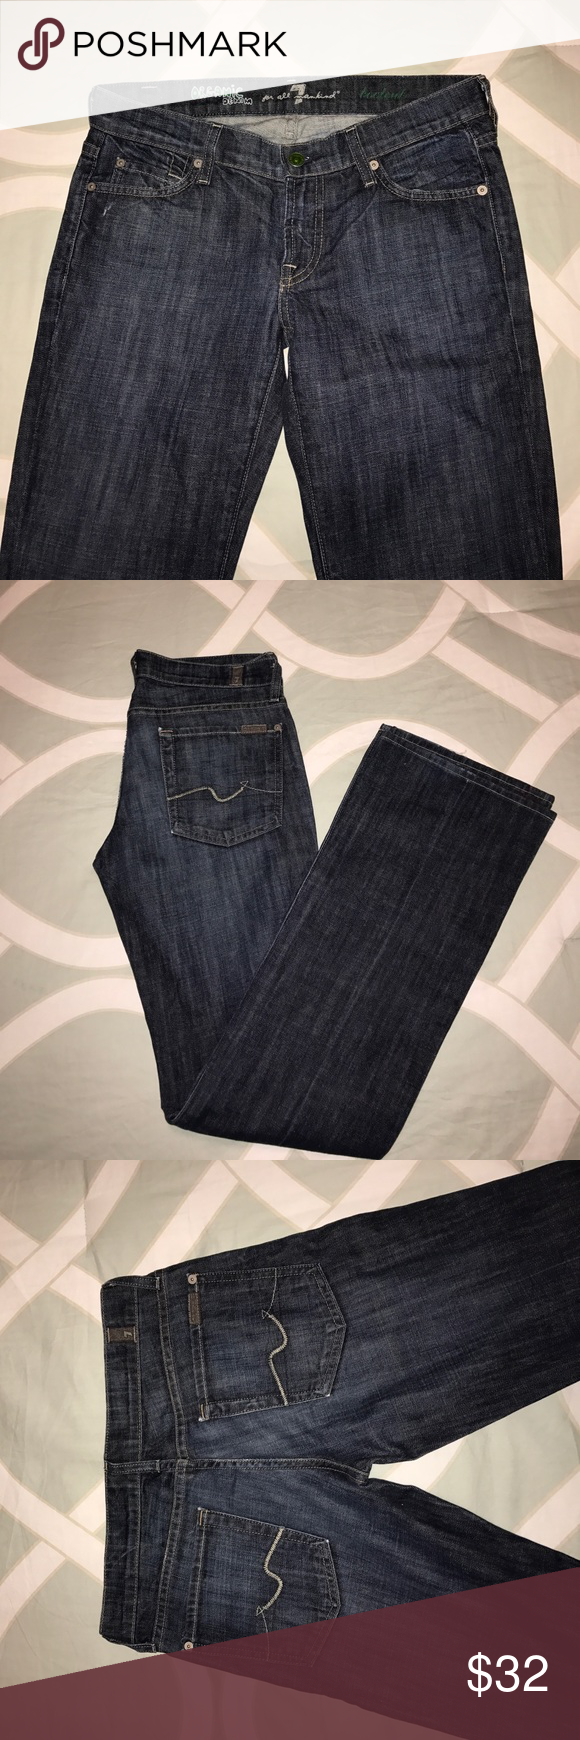 """7 For All Mankind Organic Bootcut Jeans Size 27 7 For All Mankind Organic Denim Bootcut Jeans. Size 27.  Style # UO75394S-394S. 32"""" from crotch to hem.  Great condition. Looove these jeans!! 7 For All Mankind Jeans Boot Cut"""